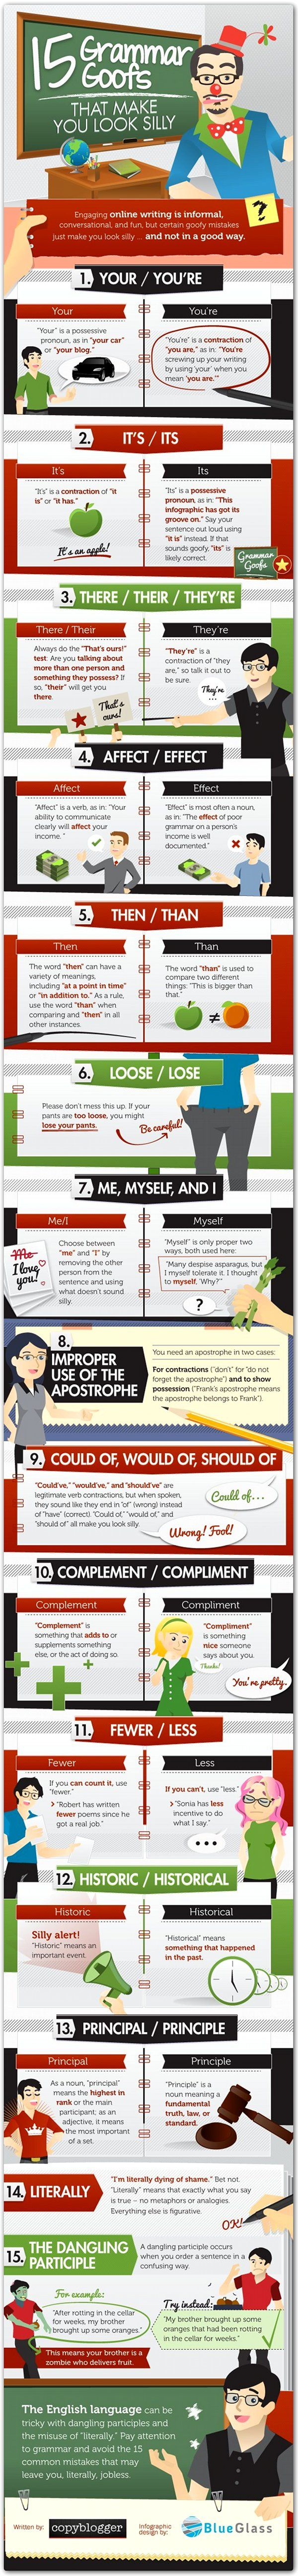 """15 Common Grammar Mistakes - wow, this is really thorough! Covers more than just the typical """"your/you're"""" and """"there/they're/their"""" errors. This would be great to have displayed in the classroom. We like the idea of teaching these grammar """"don'ts"""" at a young age to avoid development of bad habits (mistakes I'm sure we've all heard even ADULTS make!). www.teachthis.com.au"""